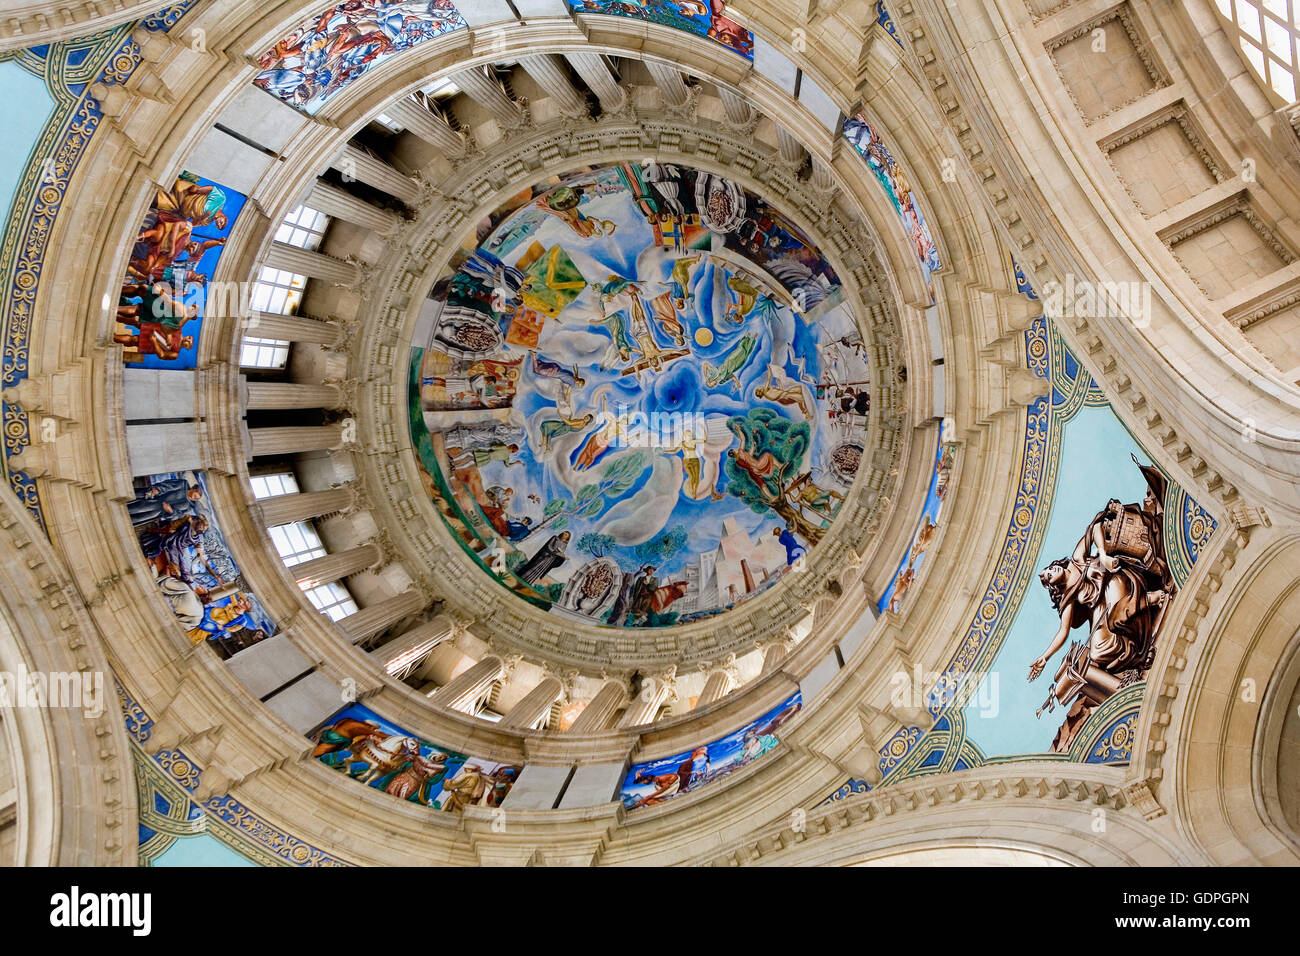 Barcelona: Dome in MNAC (National Art Museum of Catalonia). Montjuic - Stock Image